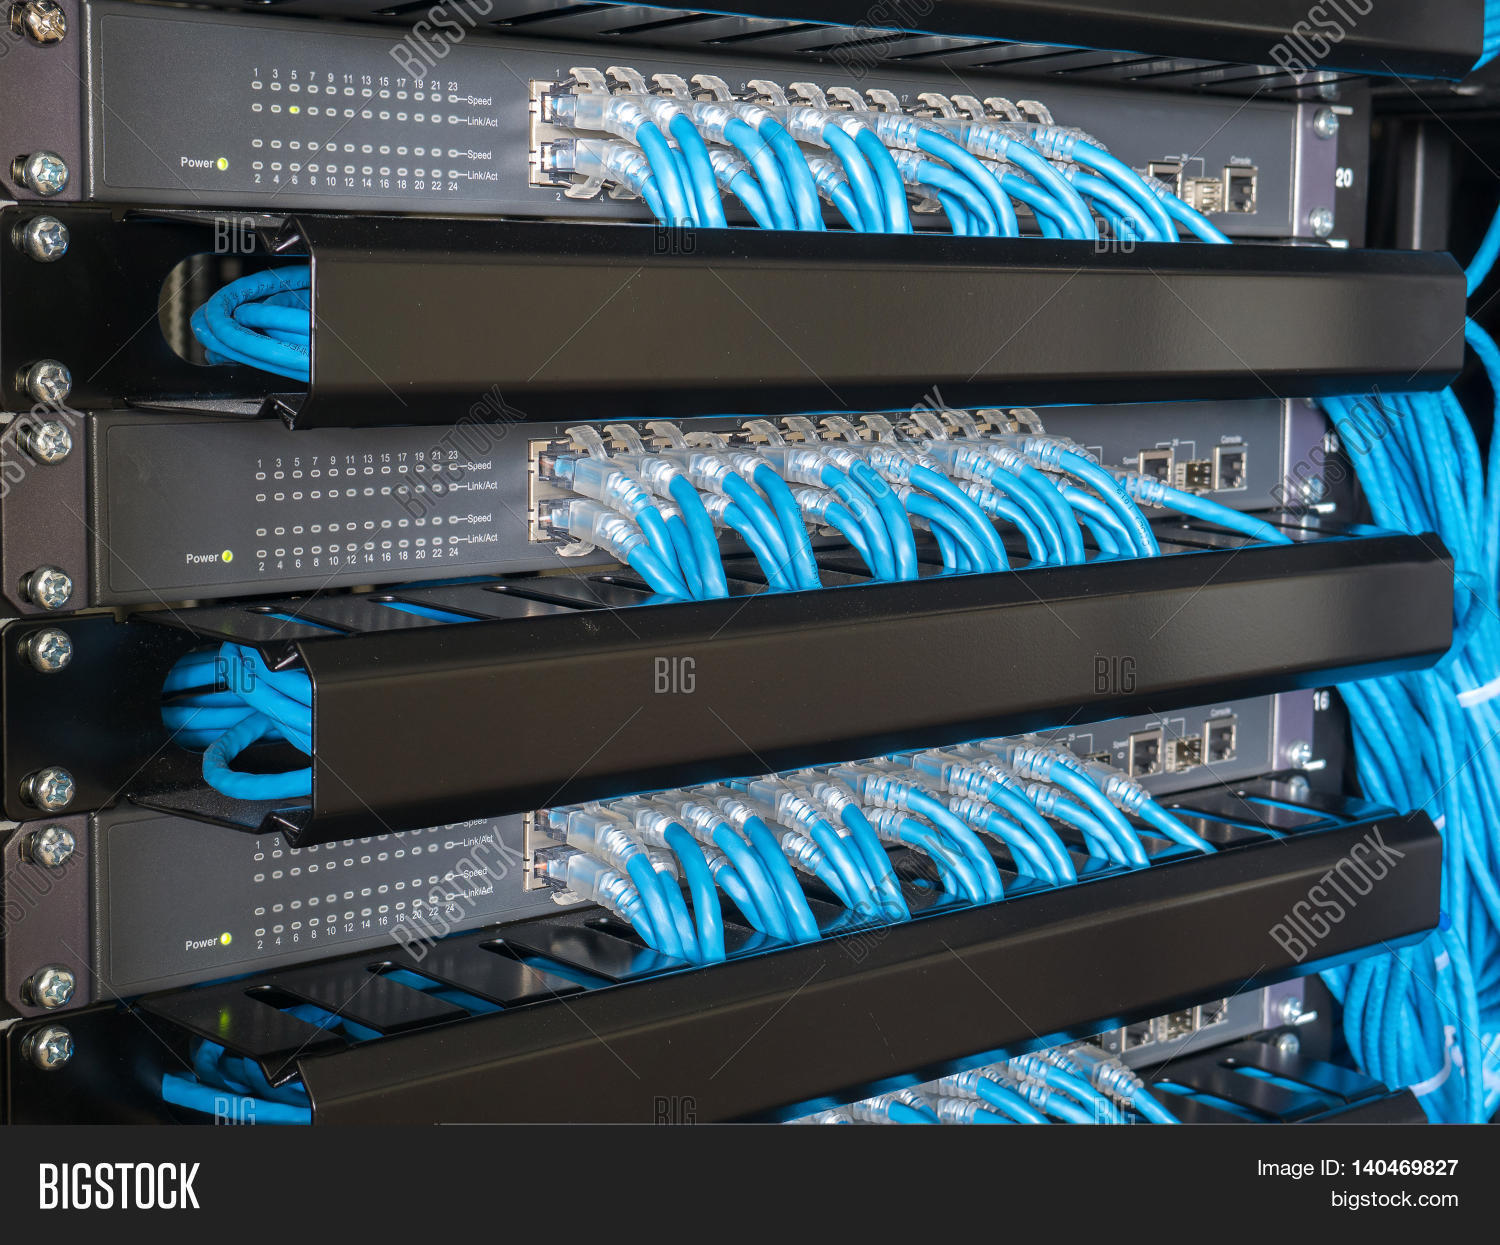 ethernet network switch network image photo bigstock